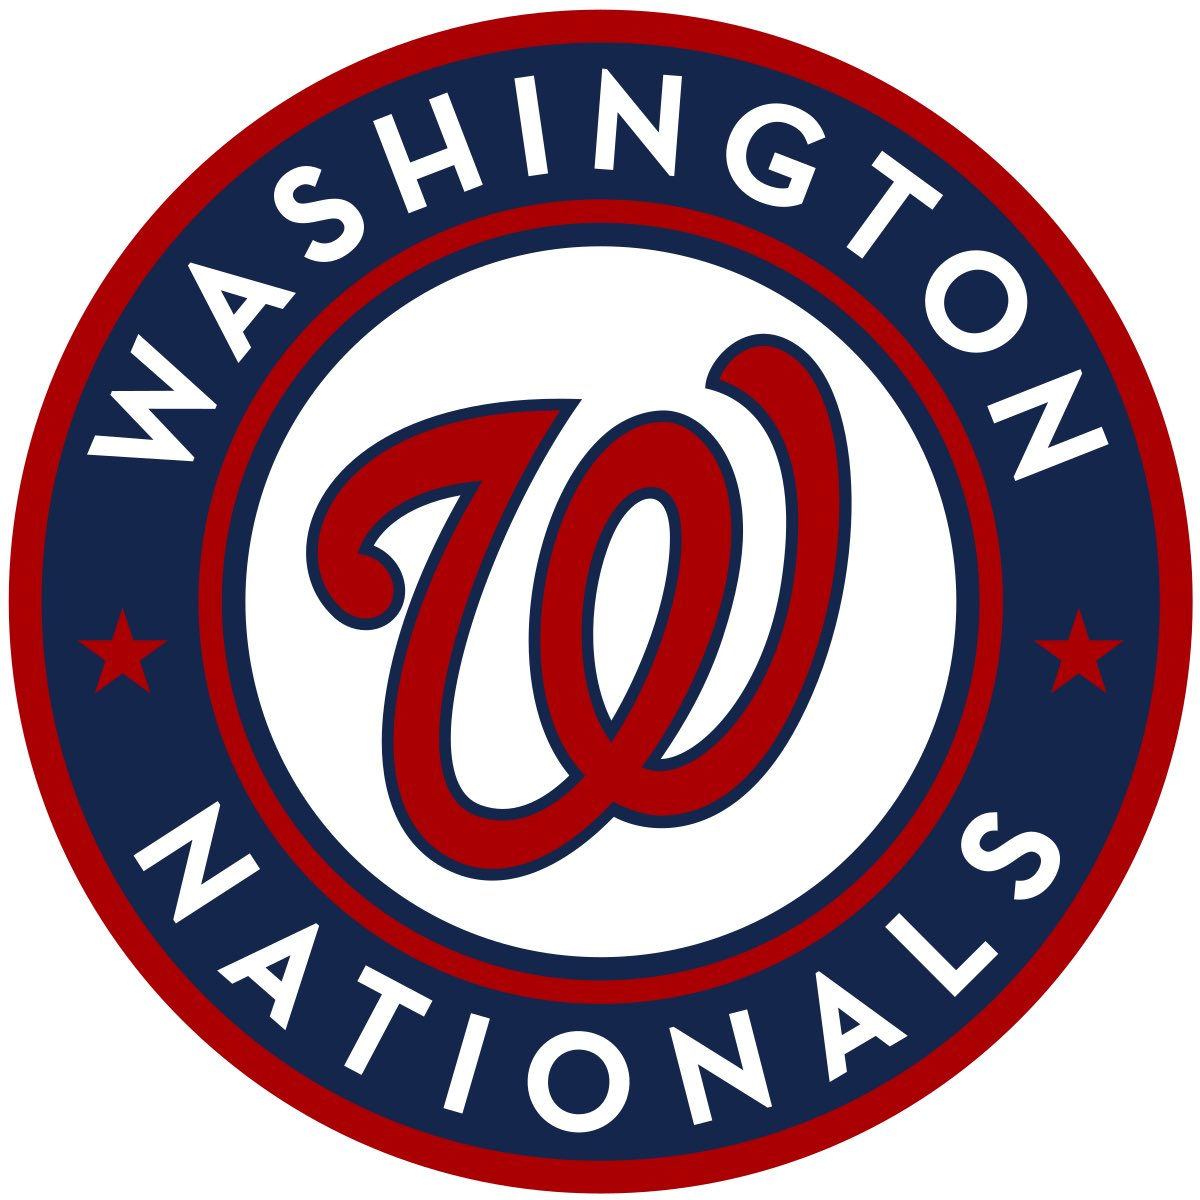 Got a call today that changed my life. Thank you for believing in me @Nationals. Let's go to work